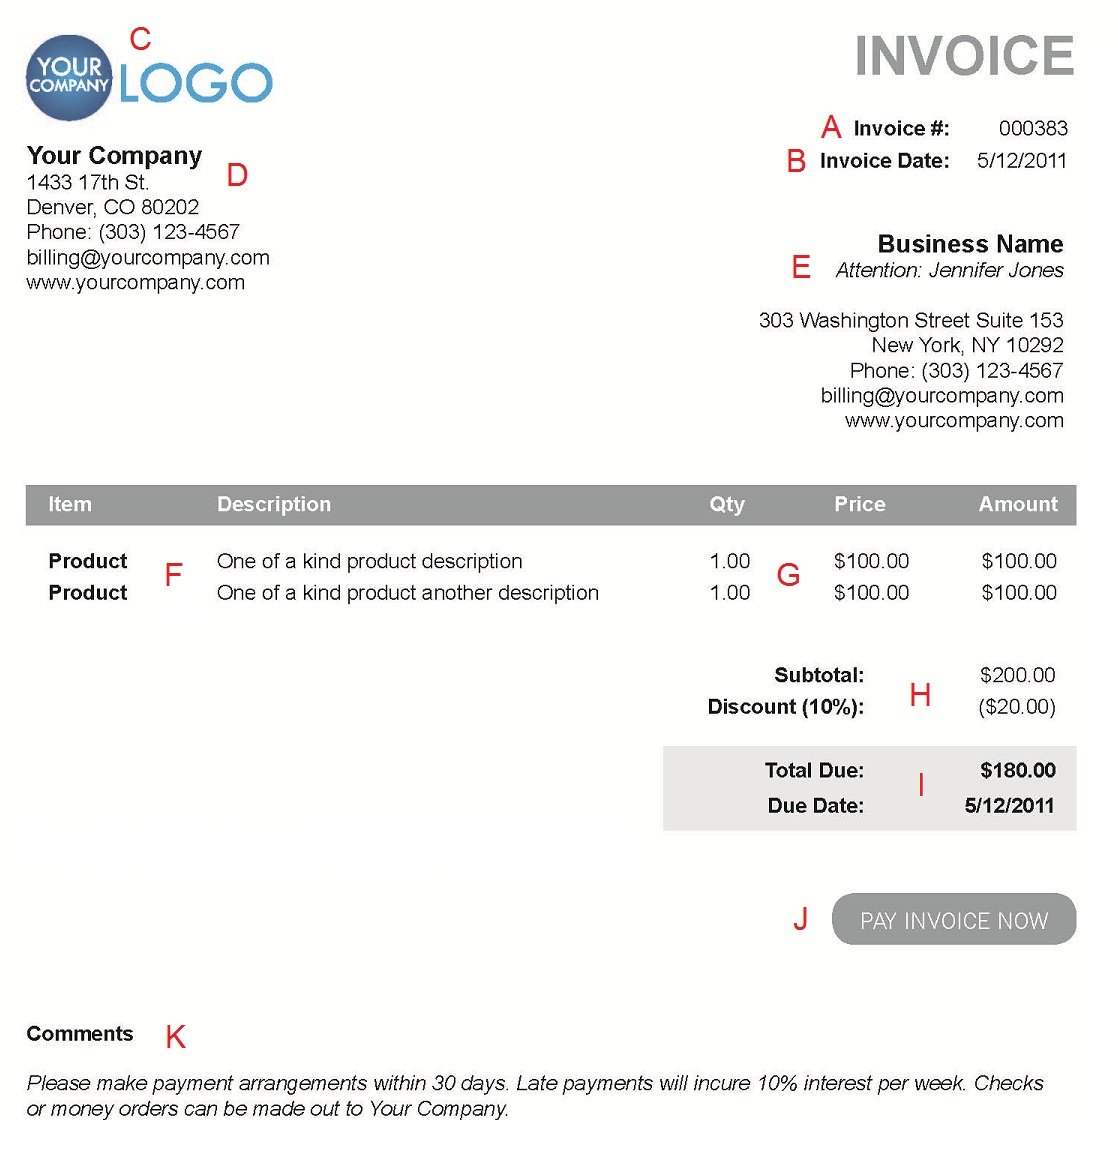 Totallocalus  Fascinating The  Different Sections Of An Electronic Payment Invoice With Exquisite A  With Beautiful What Is Paypal Invoice Also Invoice Layout In Addition Free Invoices Online And Rent Invoice As Well As Medical Invoice Template Additionally My Invoices And Estimates Deluxe From Paysimplecom With Totallocalus  Exquisite The  Different Sections Of An Electronic Payment Invoice With Beautiful A  And Fascinating What Is Paypal Invoice Also Invoice Layout In Addition Free Invoices Online From Paysimplecom